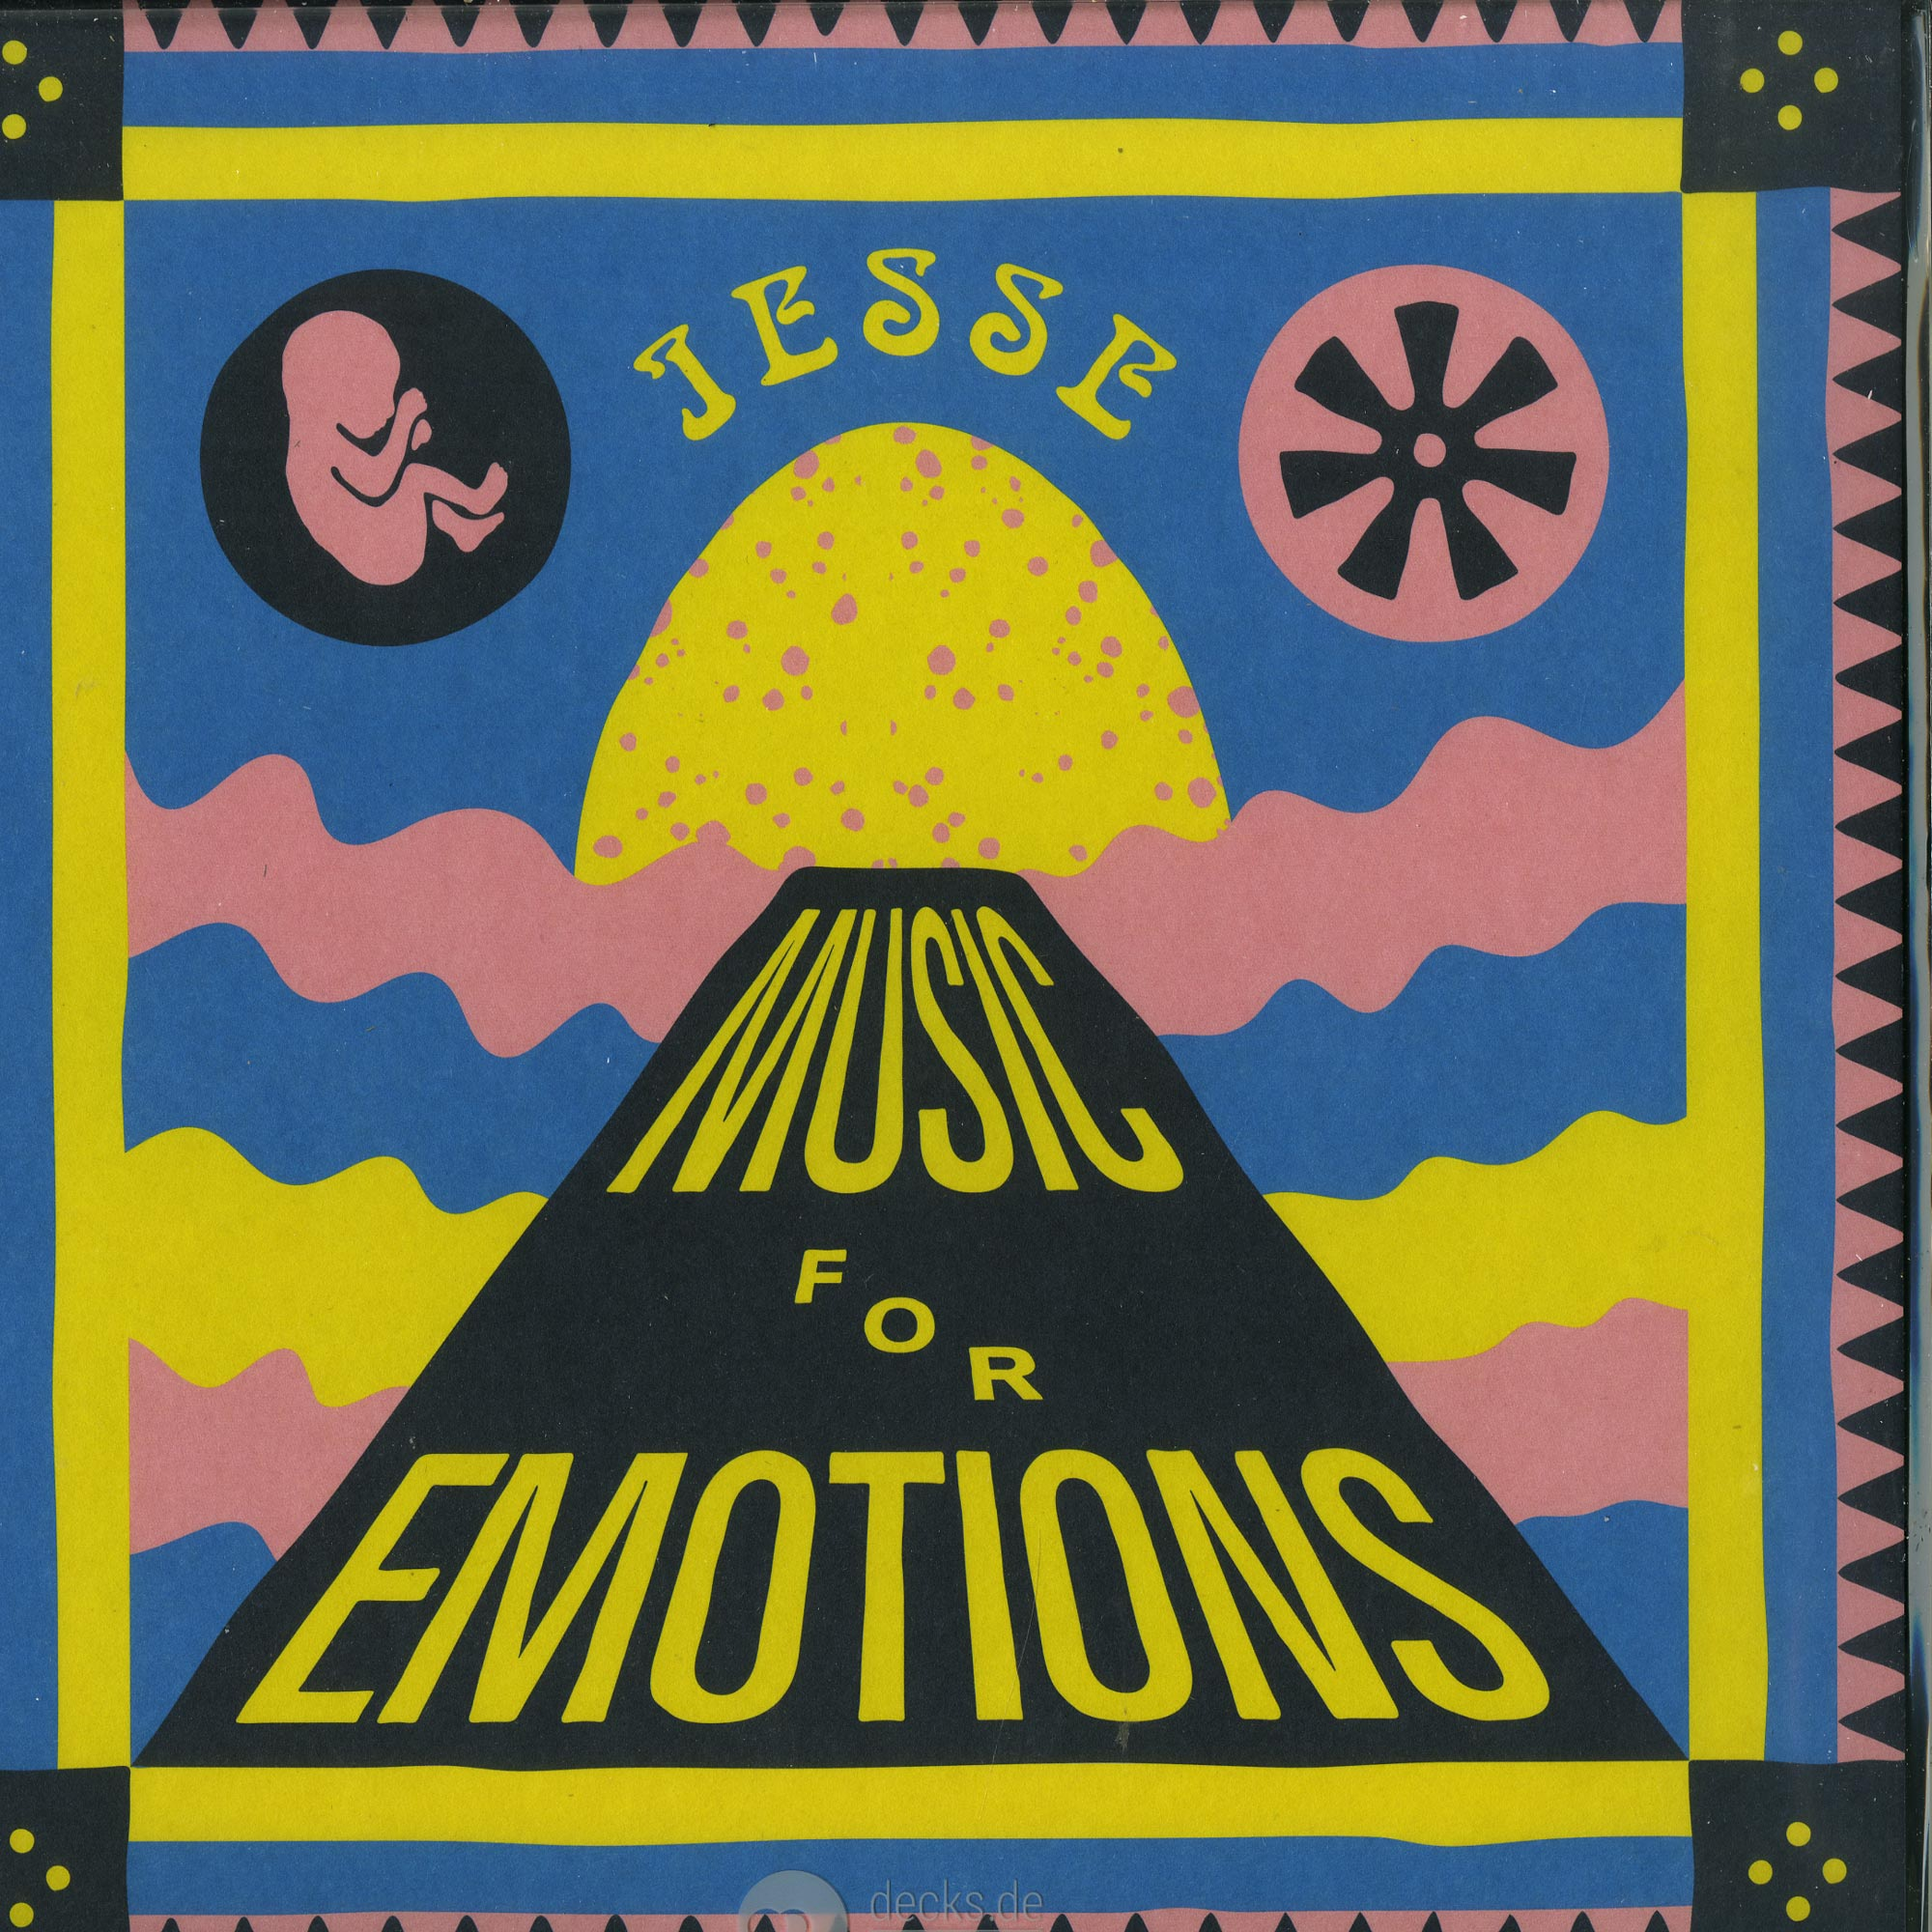 Jesse - MUSIC FOR EMOTIONS